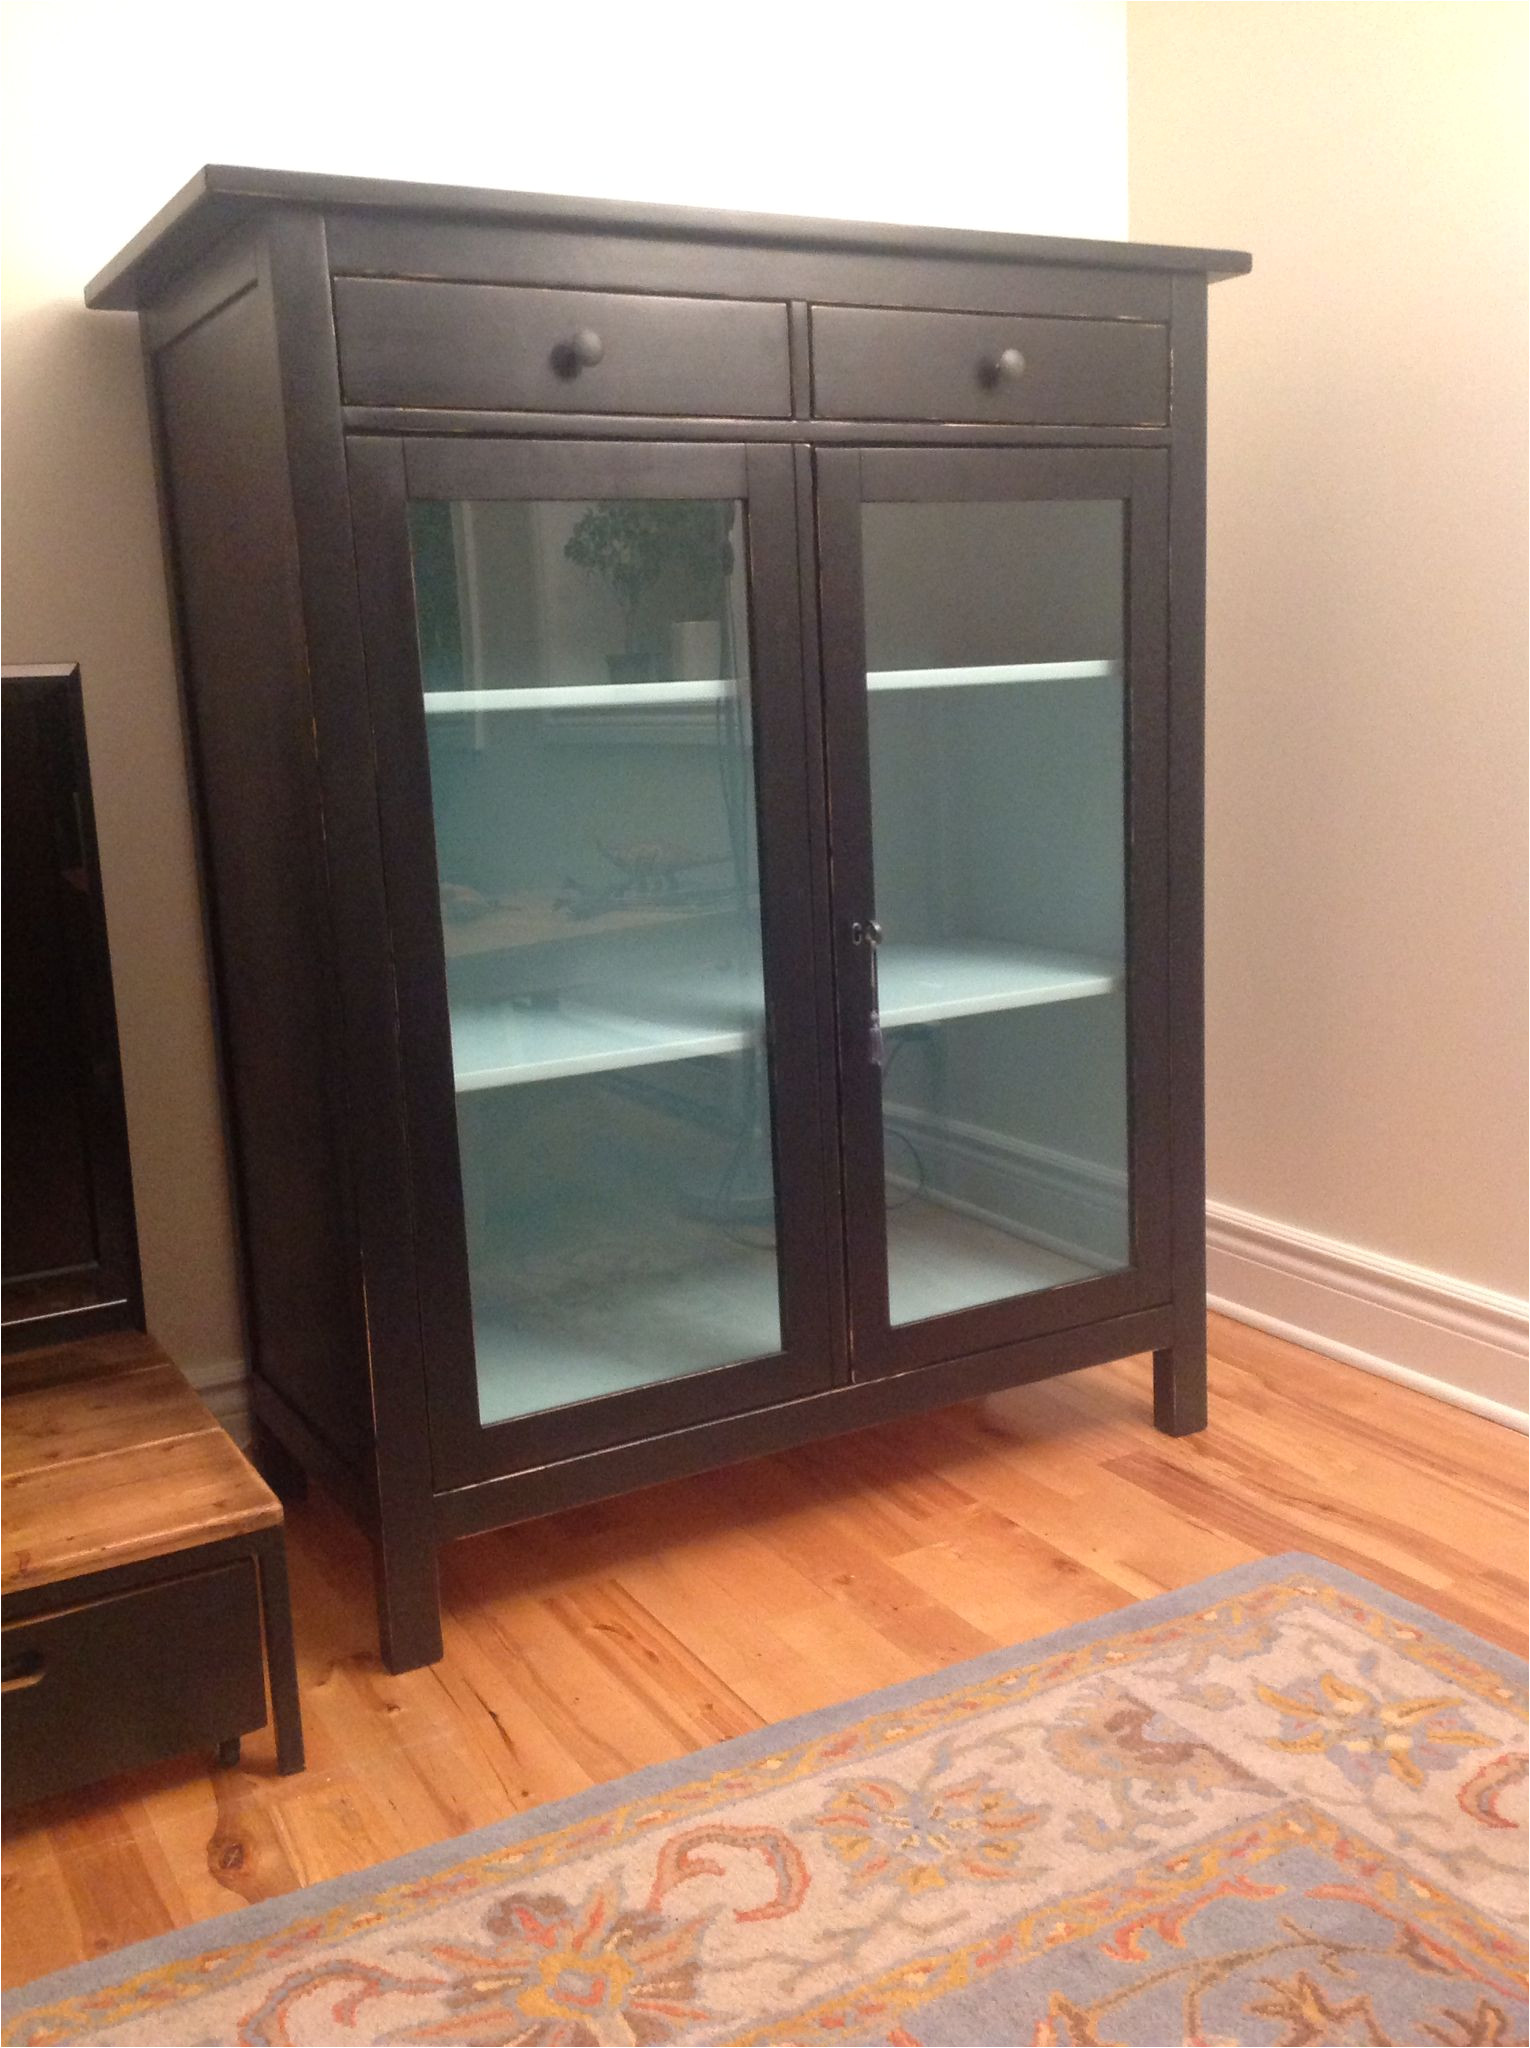 hemnes linen cabinet ikea refinished and updated from yellow to black and robin egg blue